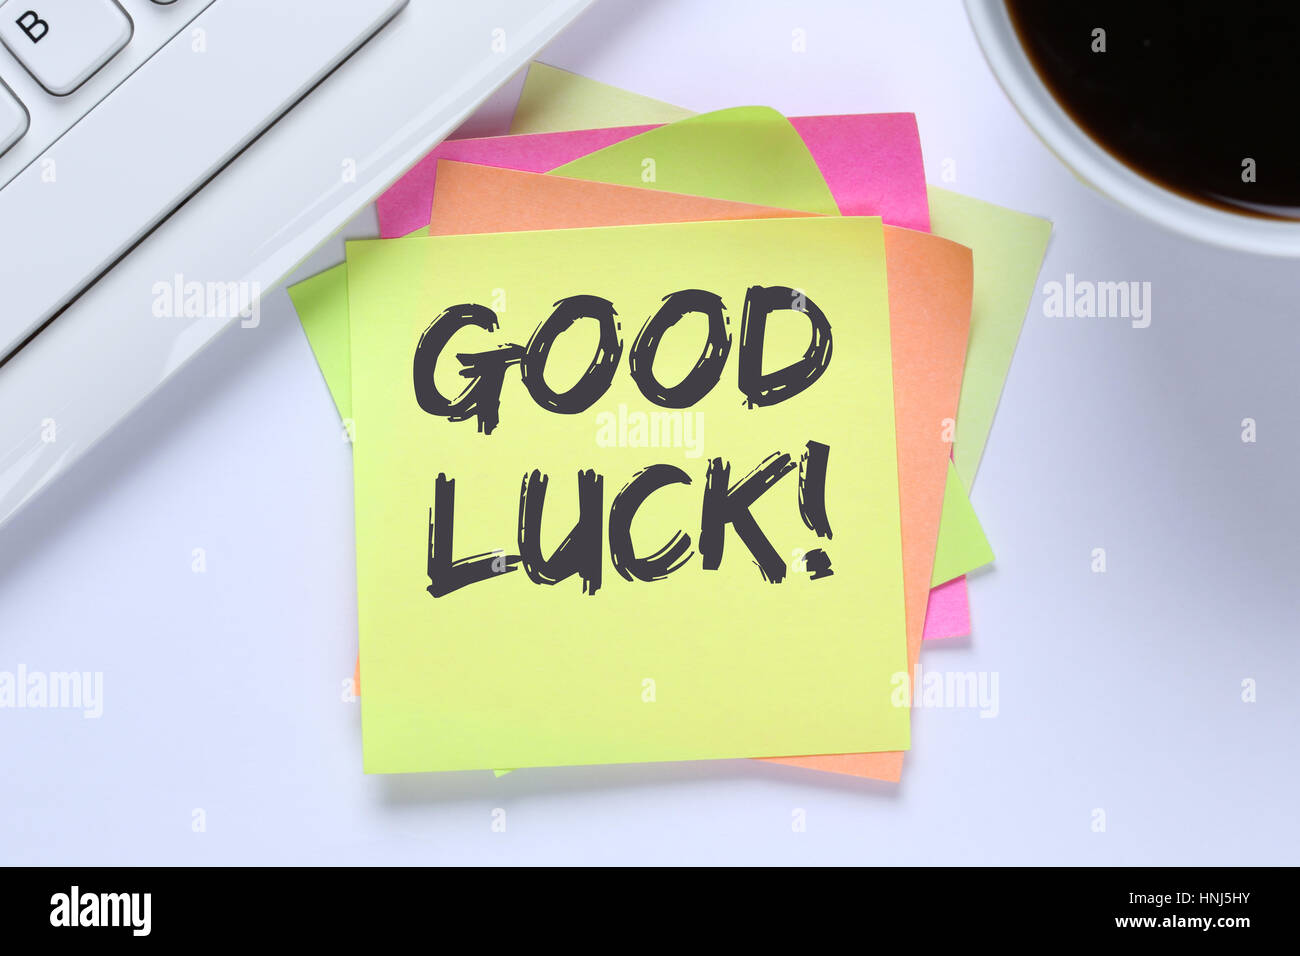 Good luck success successful test wish wishing office desk computer keyboard - Stock Image